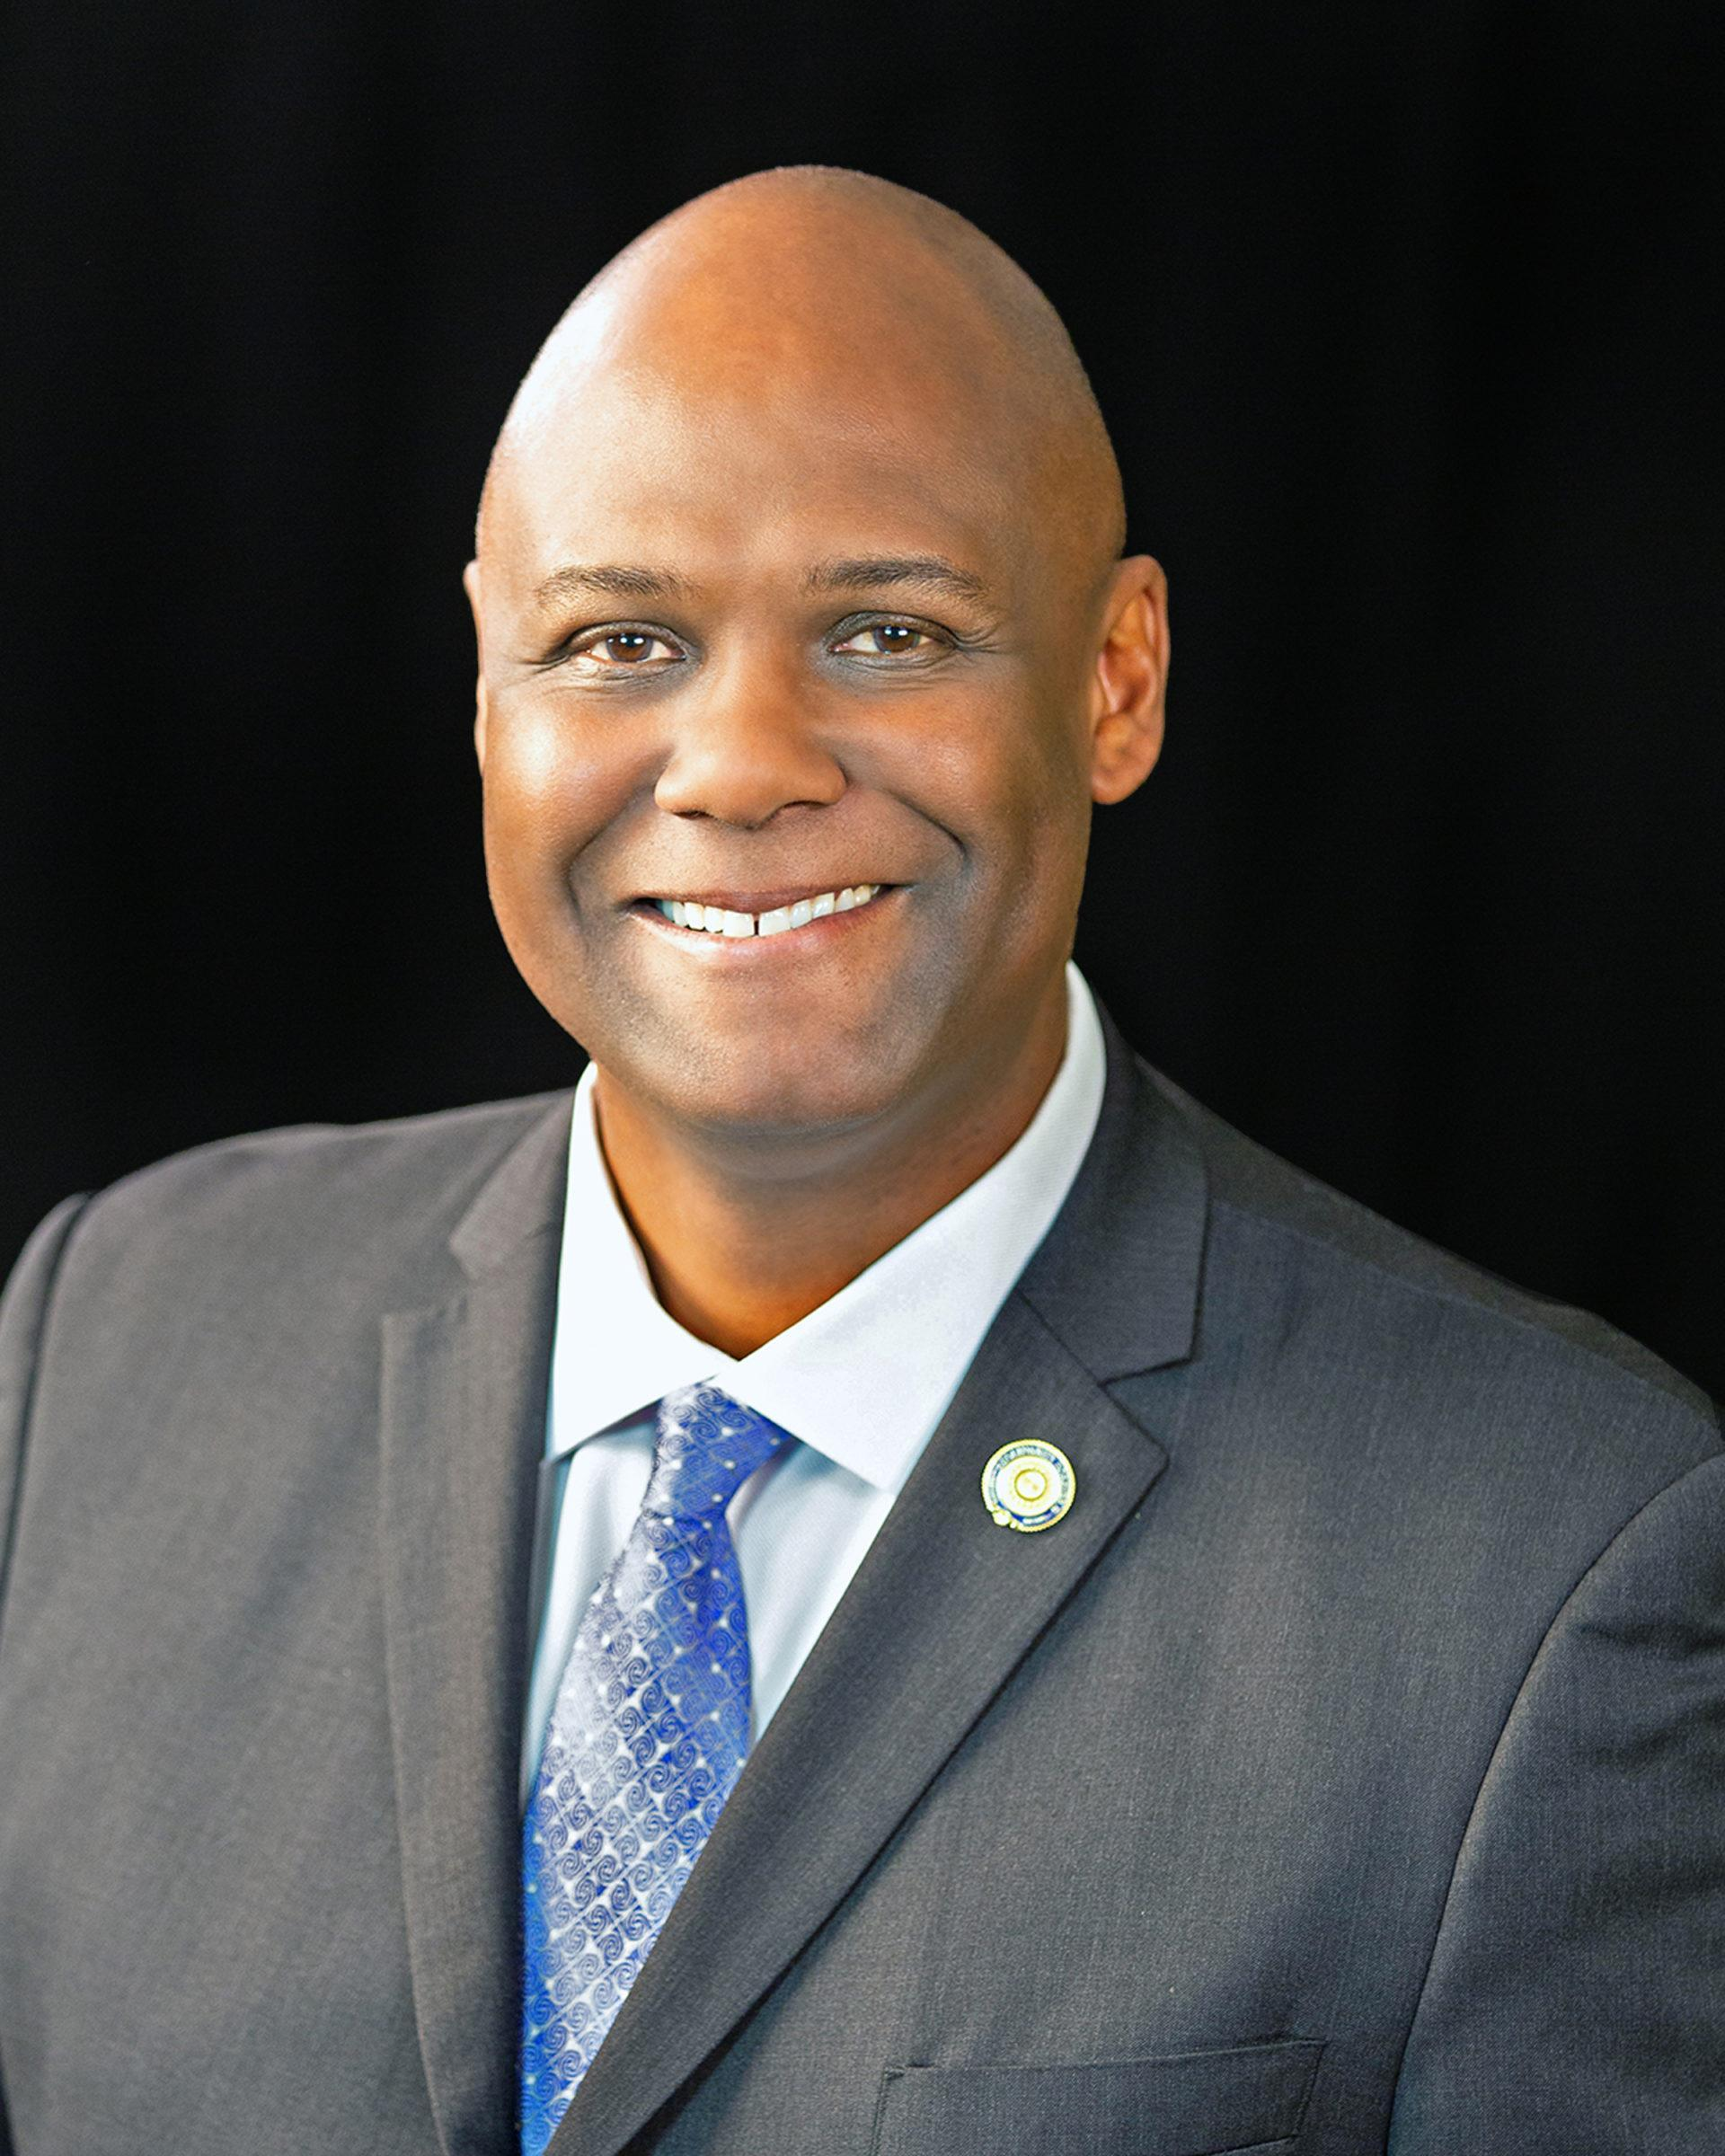 Secretary-Treasurer Ray Curry